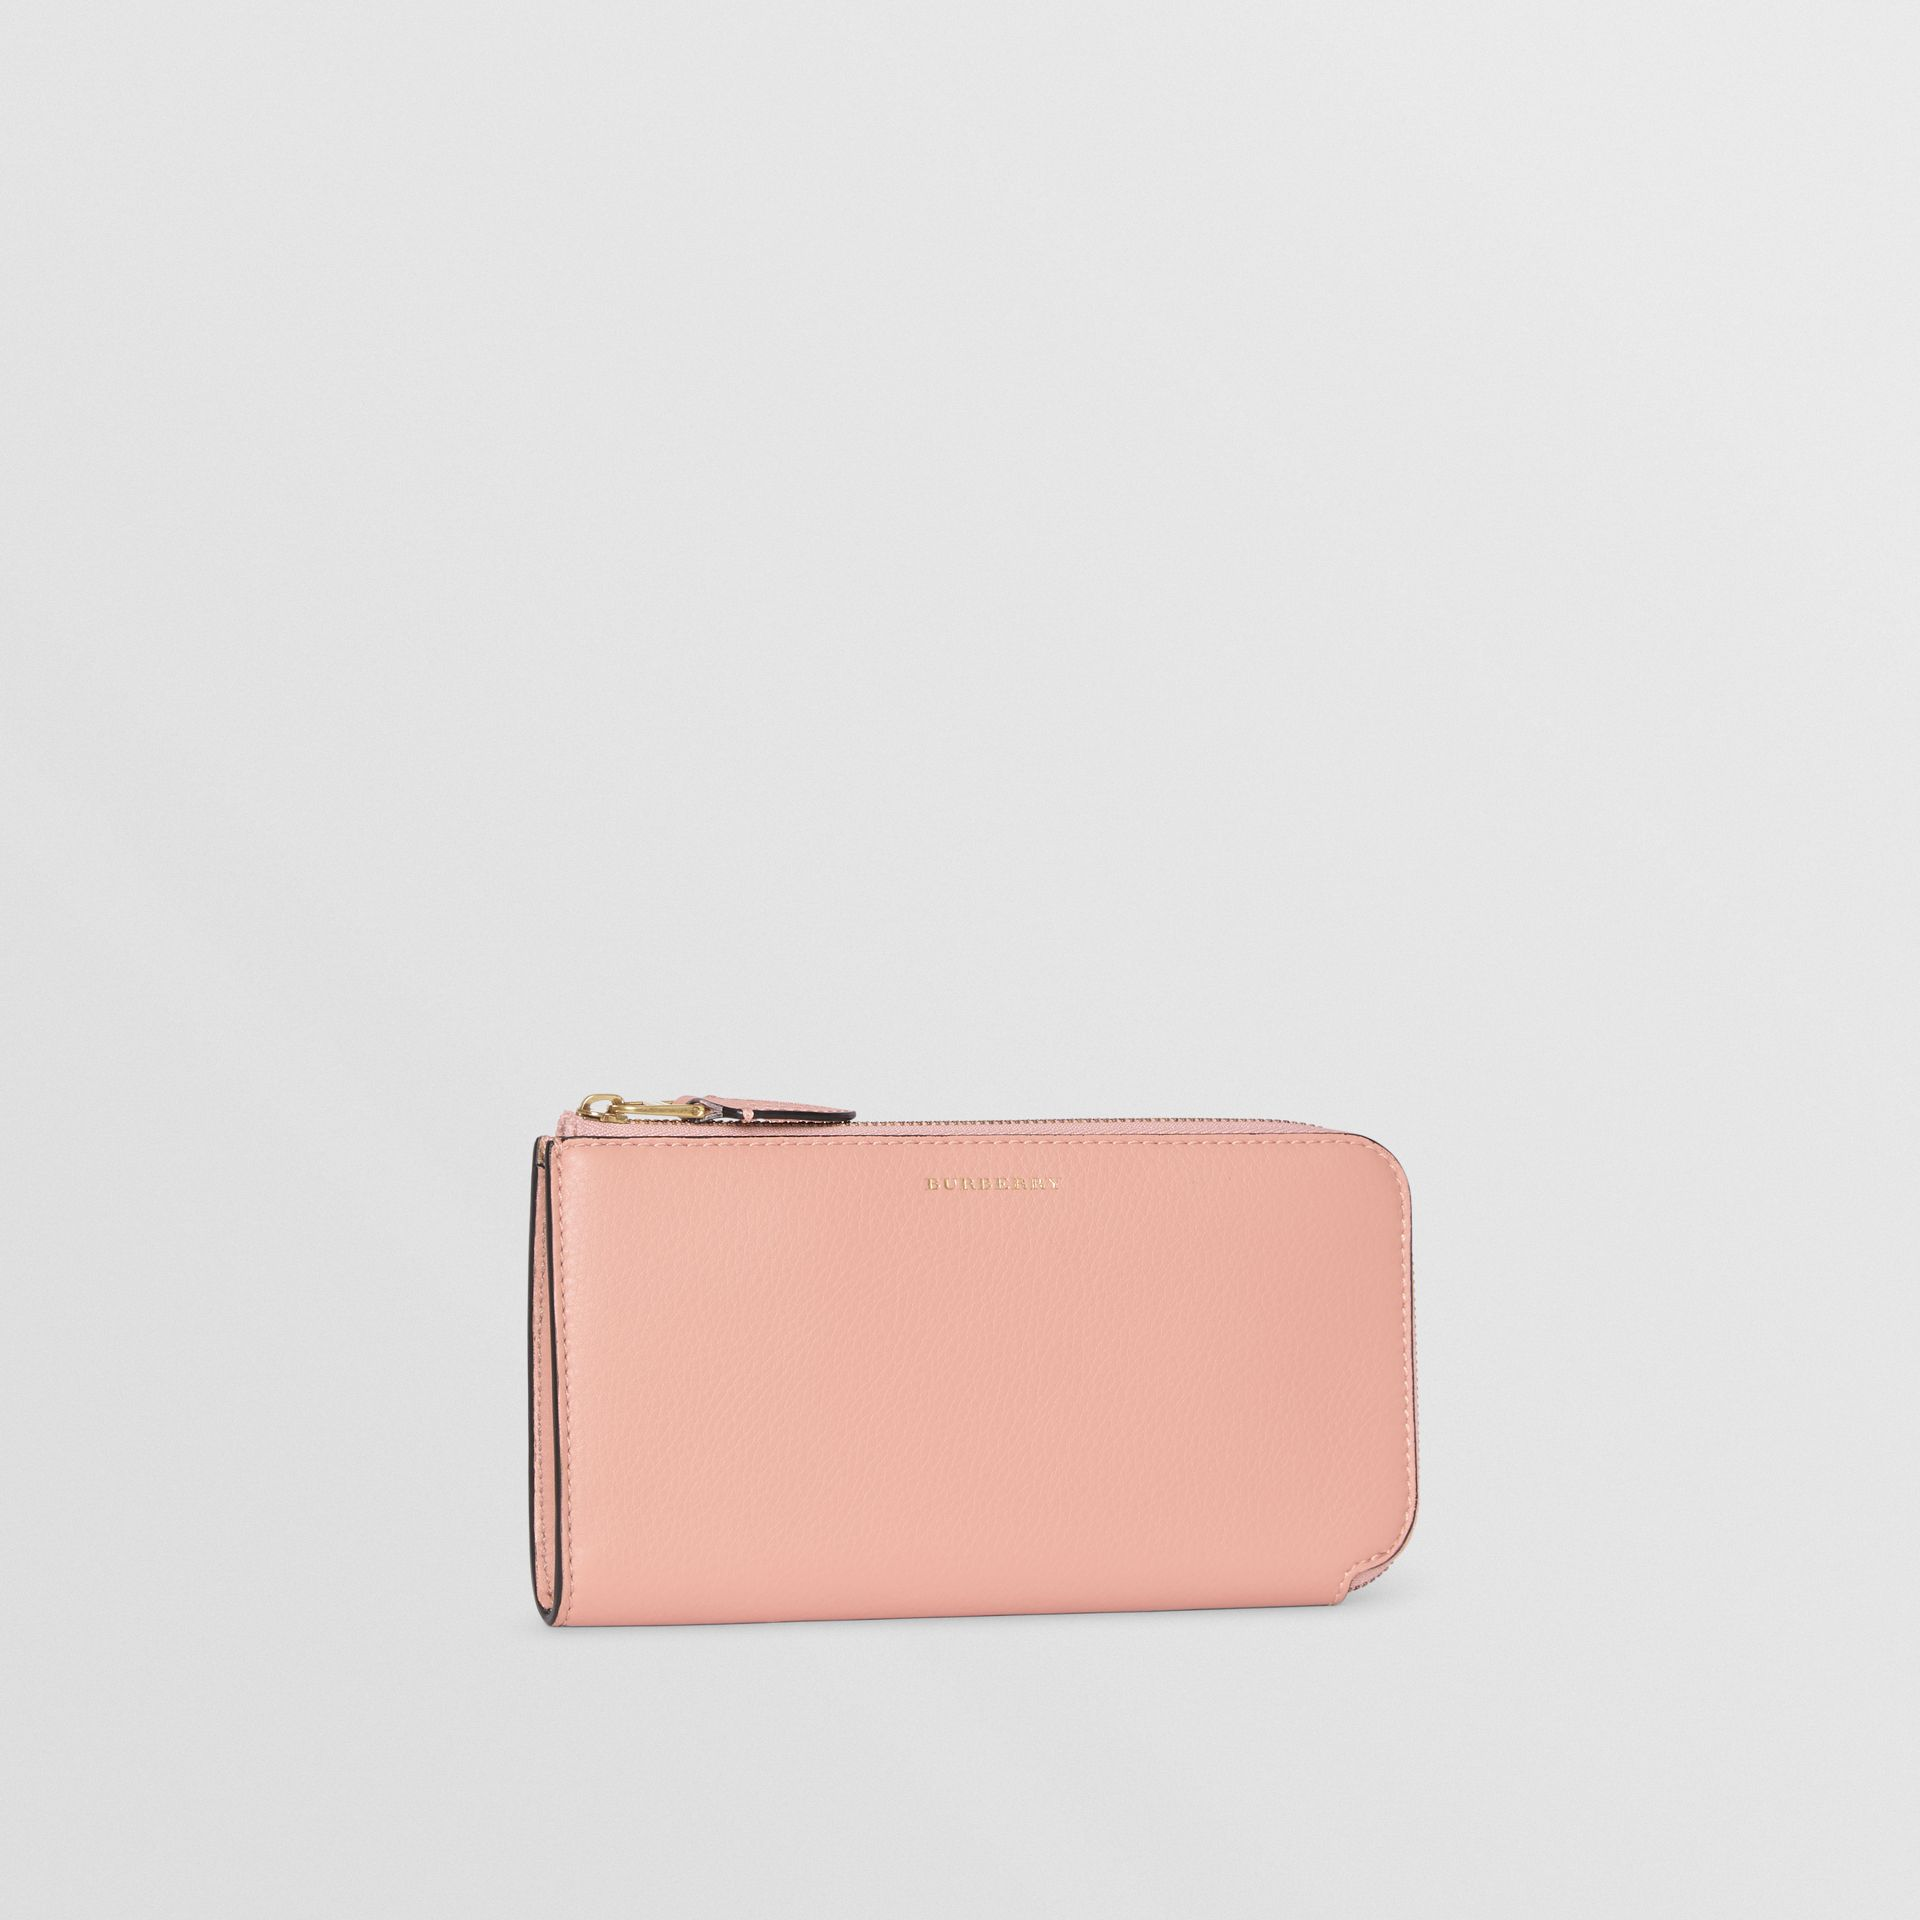 Two-tone Leather Ziparound Wallet and Coin Case in Ash Rose - Women | Burberry - gallery image 5